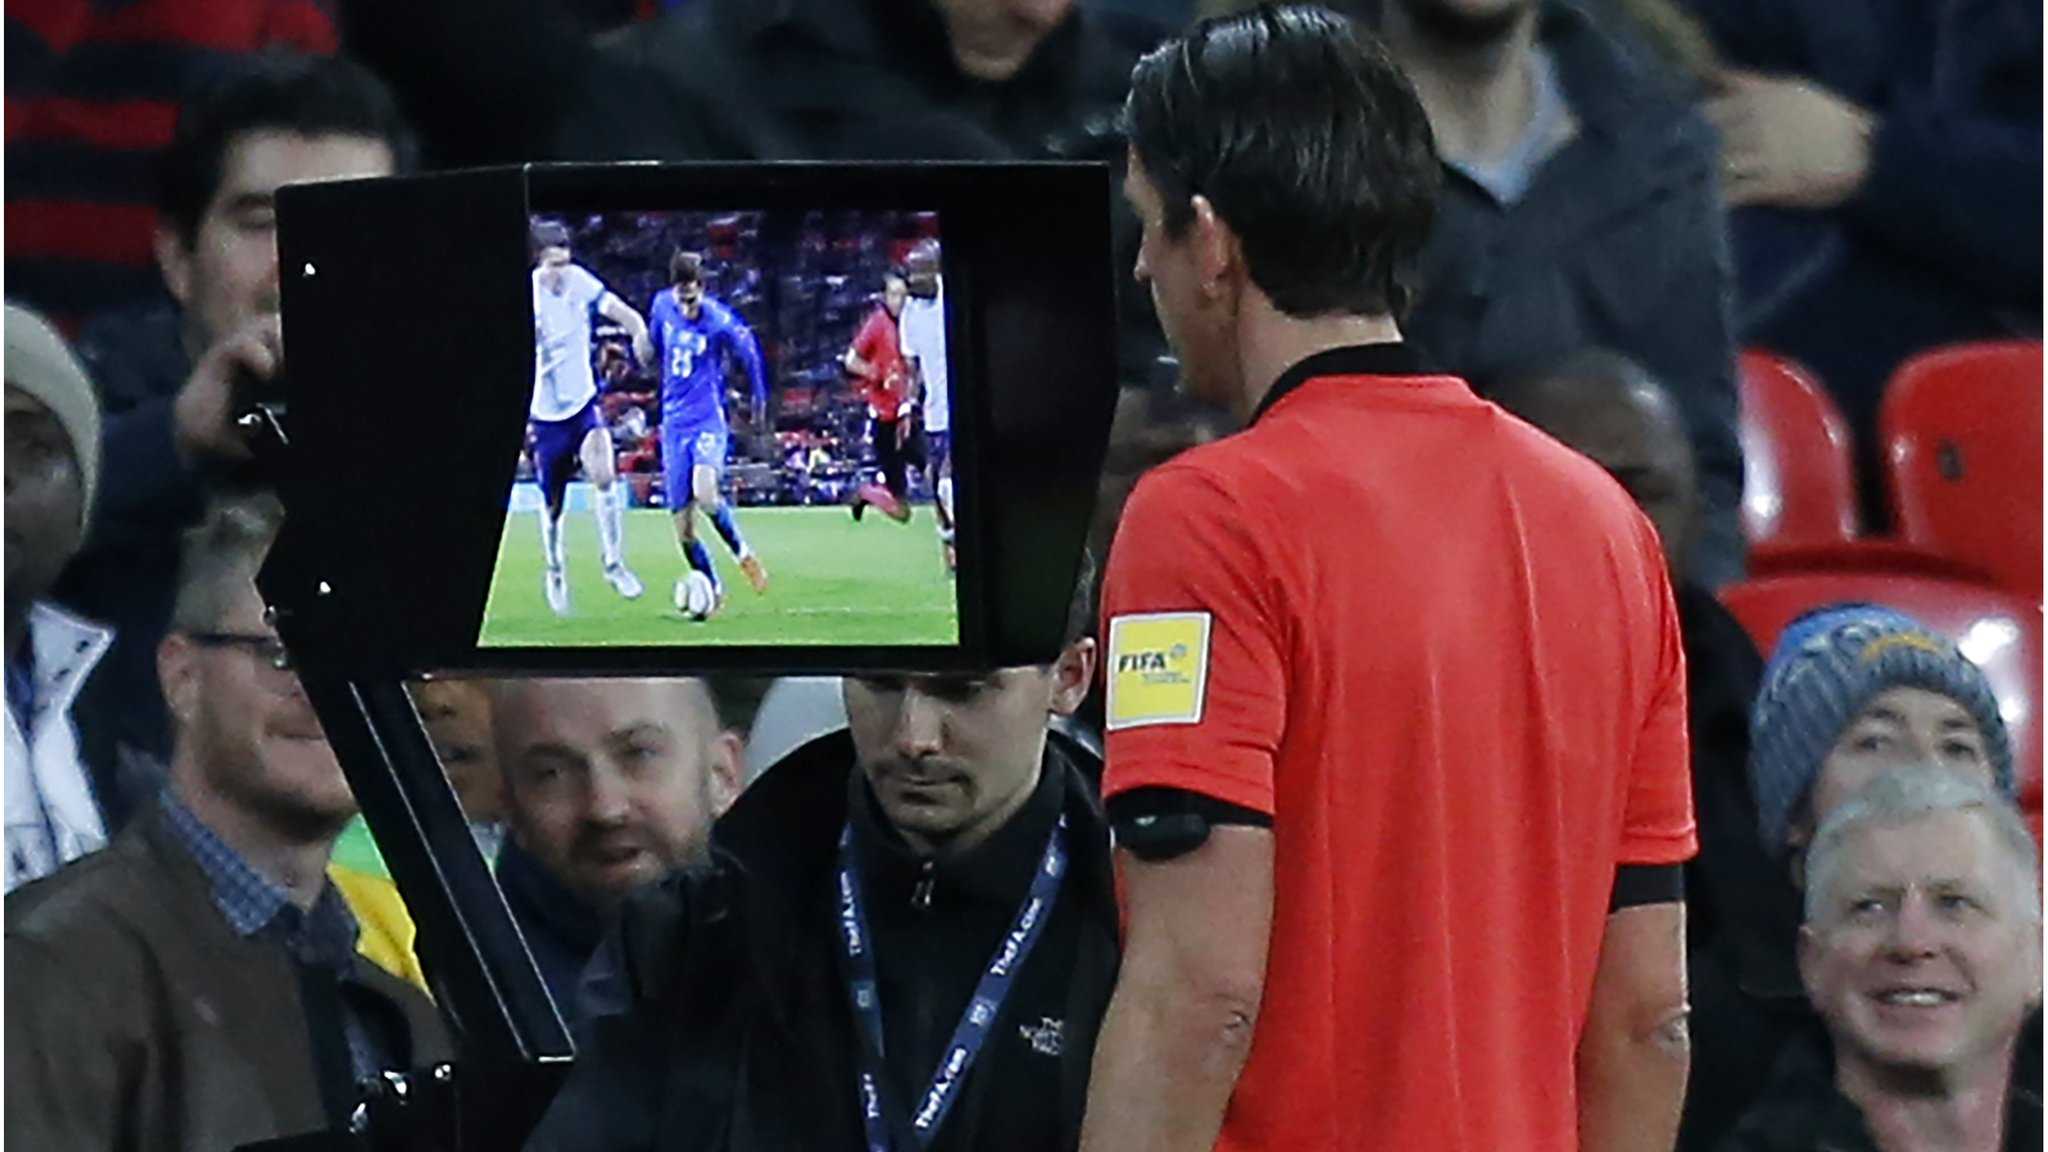 VAR: Video assistant referees set to be used in Premier League next season